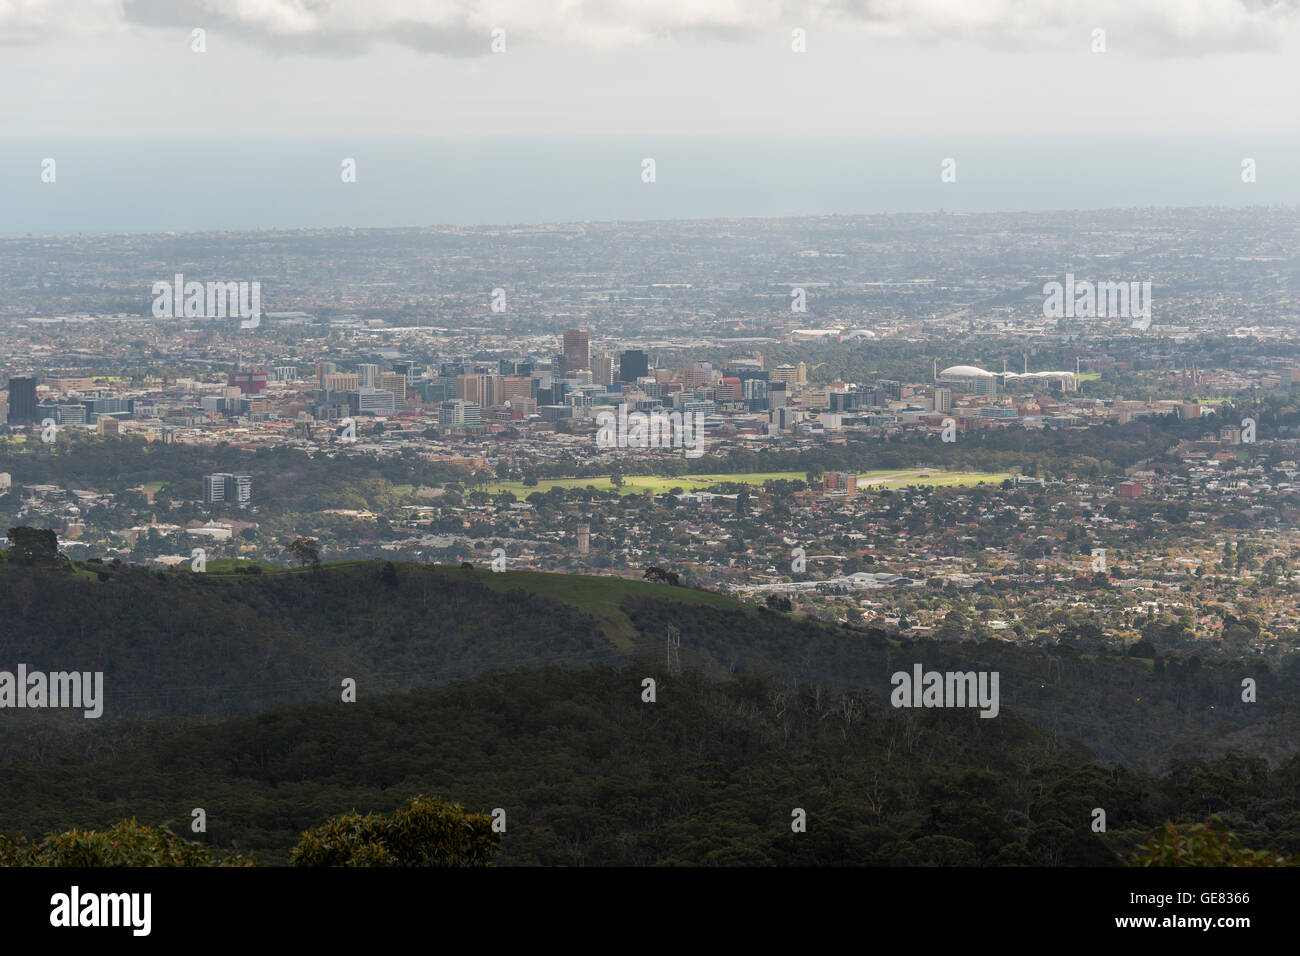 The view of Adelaide from The Summit Restaurant, Cafe and Function Centre. - Stock Image